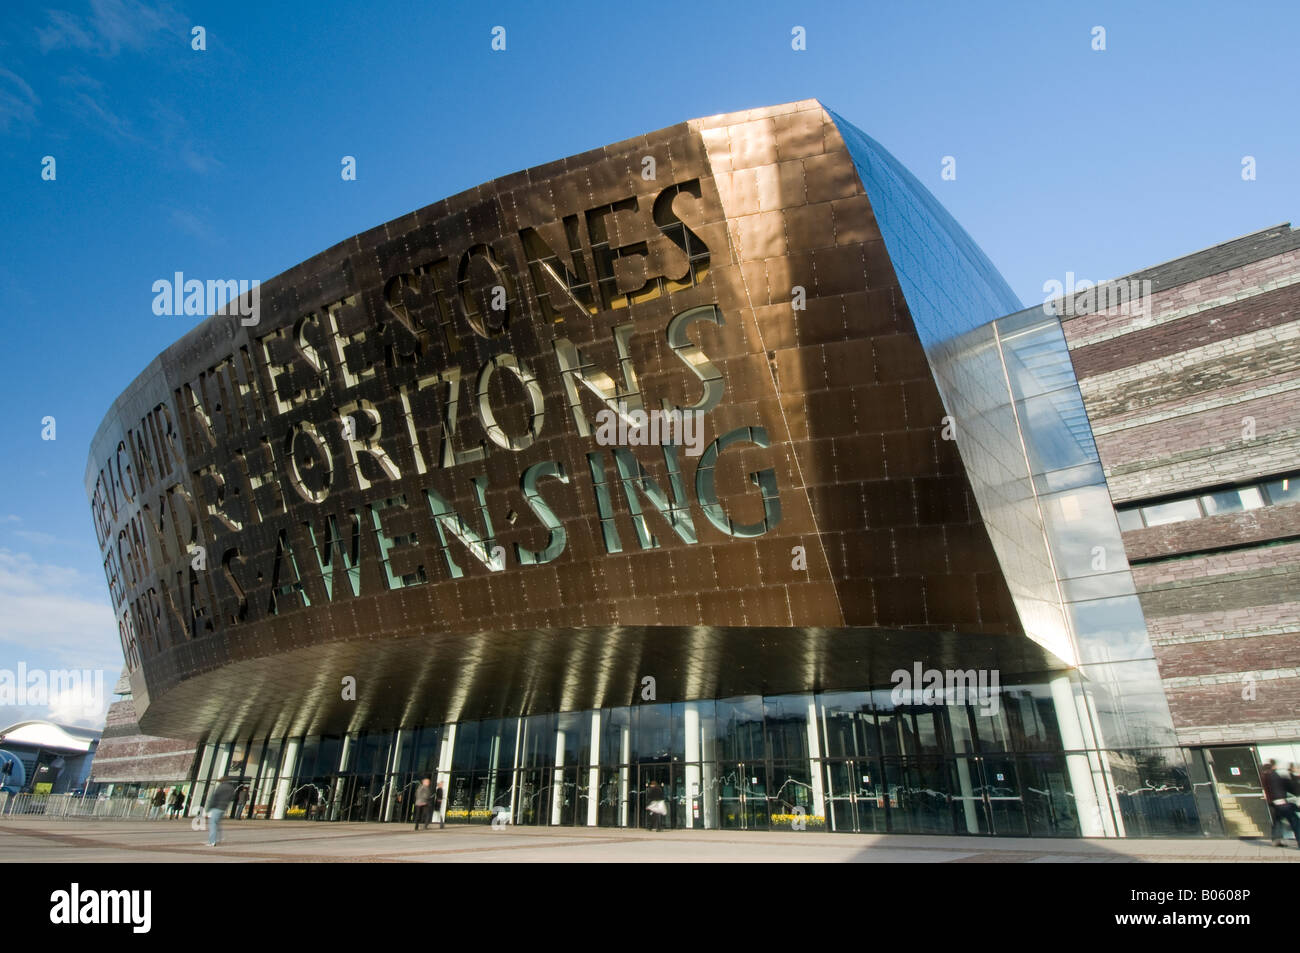 Wales Millenium Centre, Cardiff Bay Stock Photo